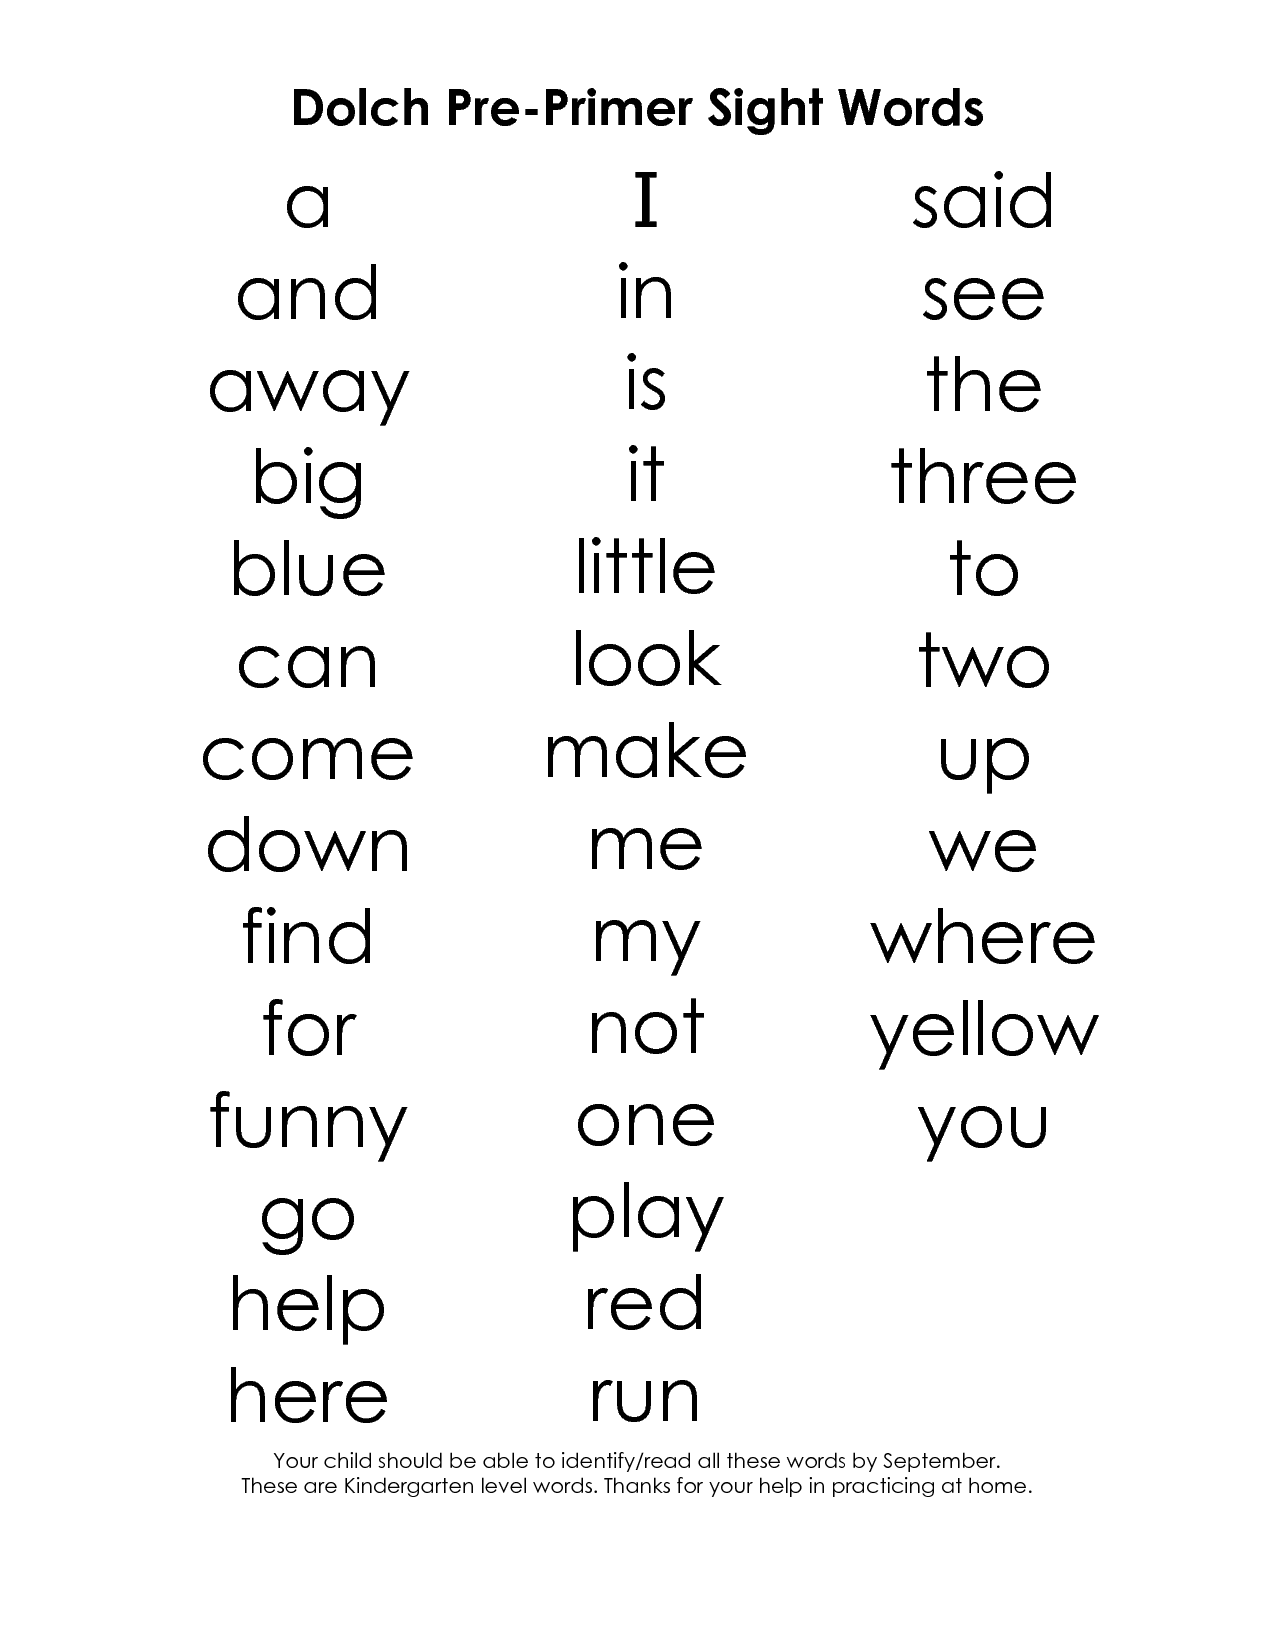 Dolch Sight Words Kindergarten